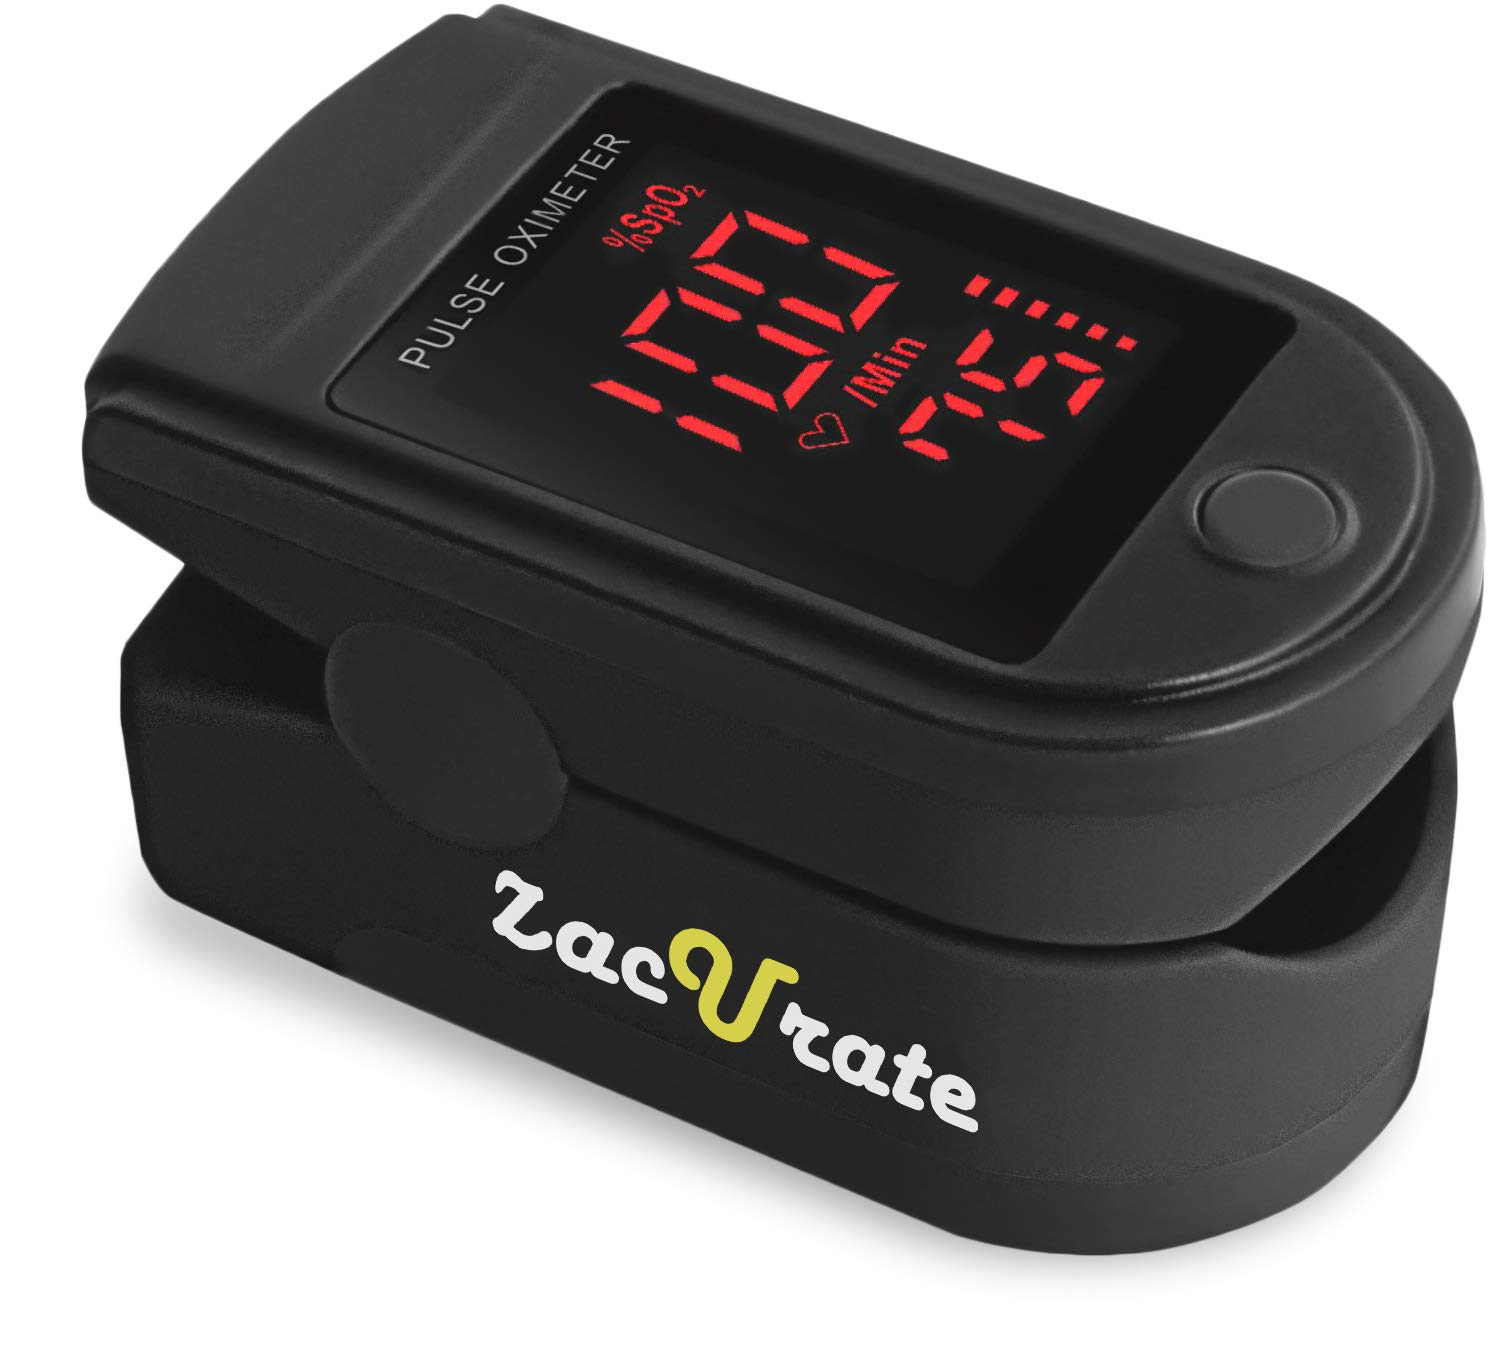 Zacurate Pro 500DL Fingertip Pulse Oximeter Blood Oxygen Saturation Monitor with Silicon Cover, Batteries and Lanyard (Black Series) (Mystic Black)